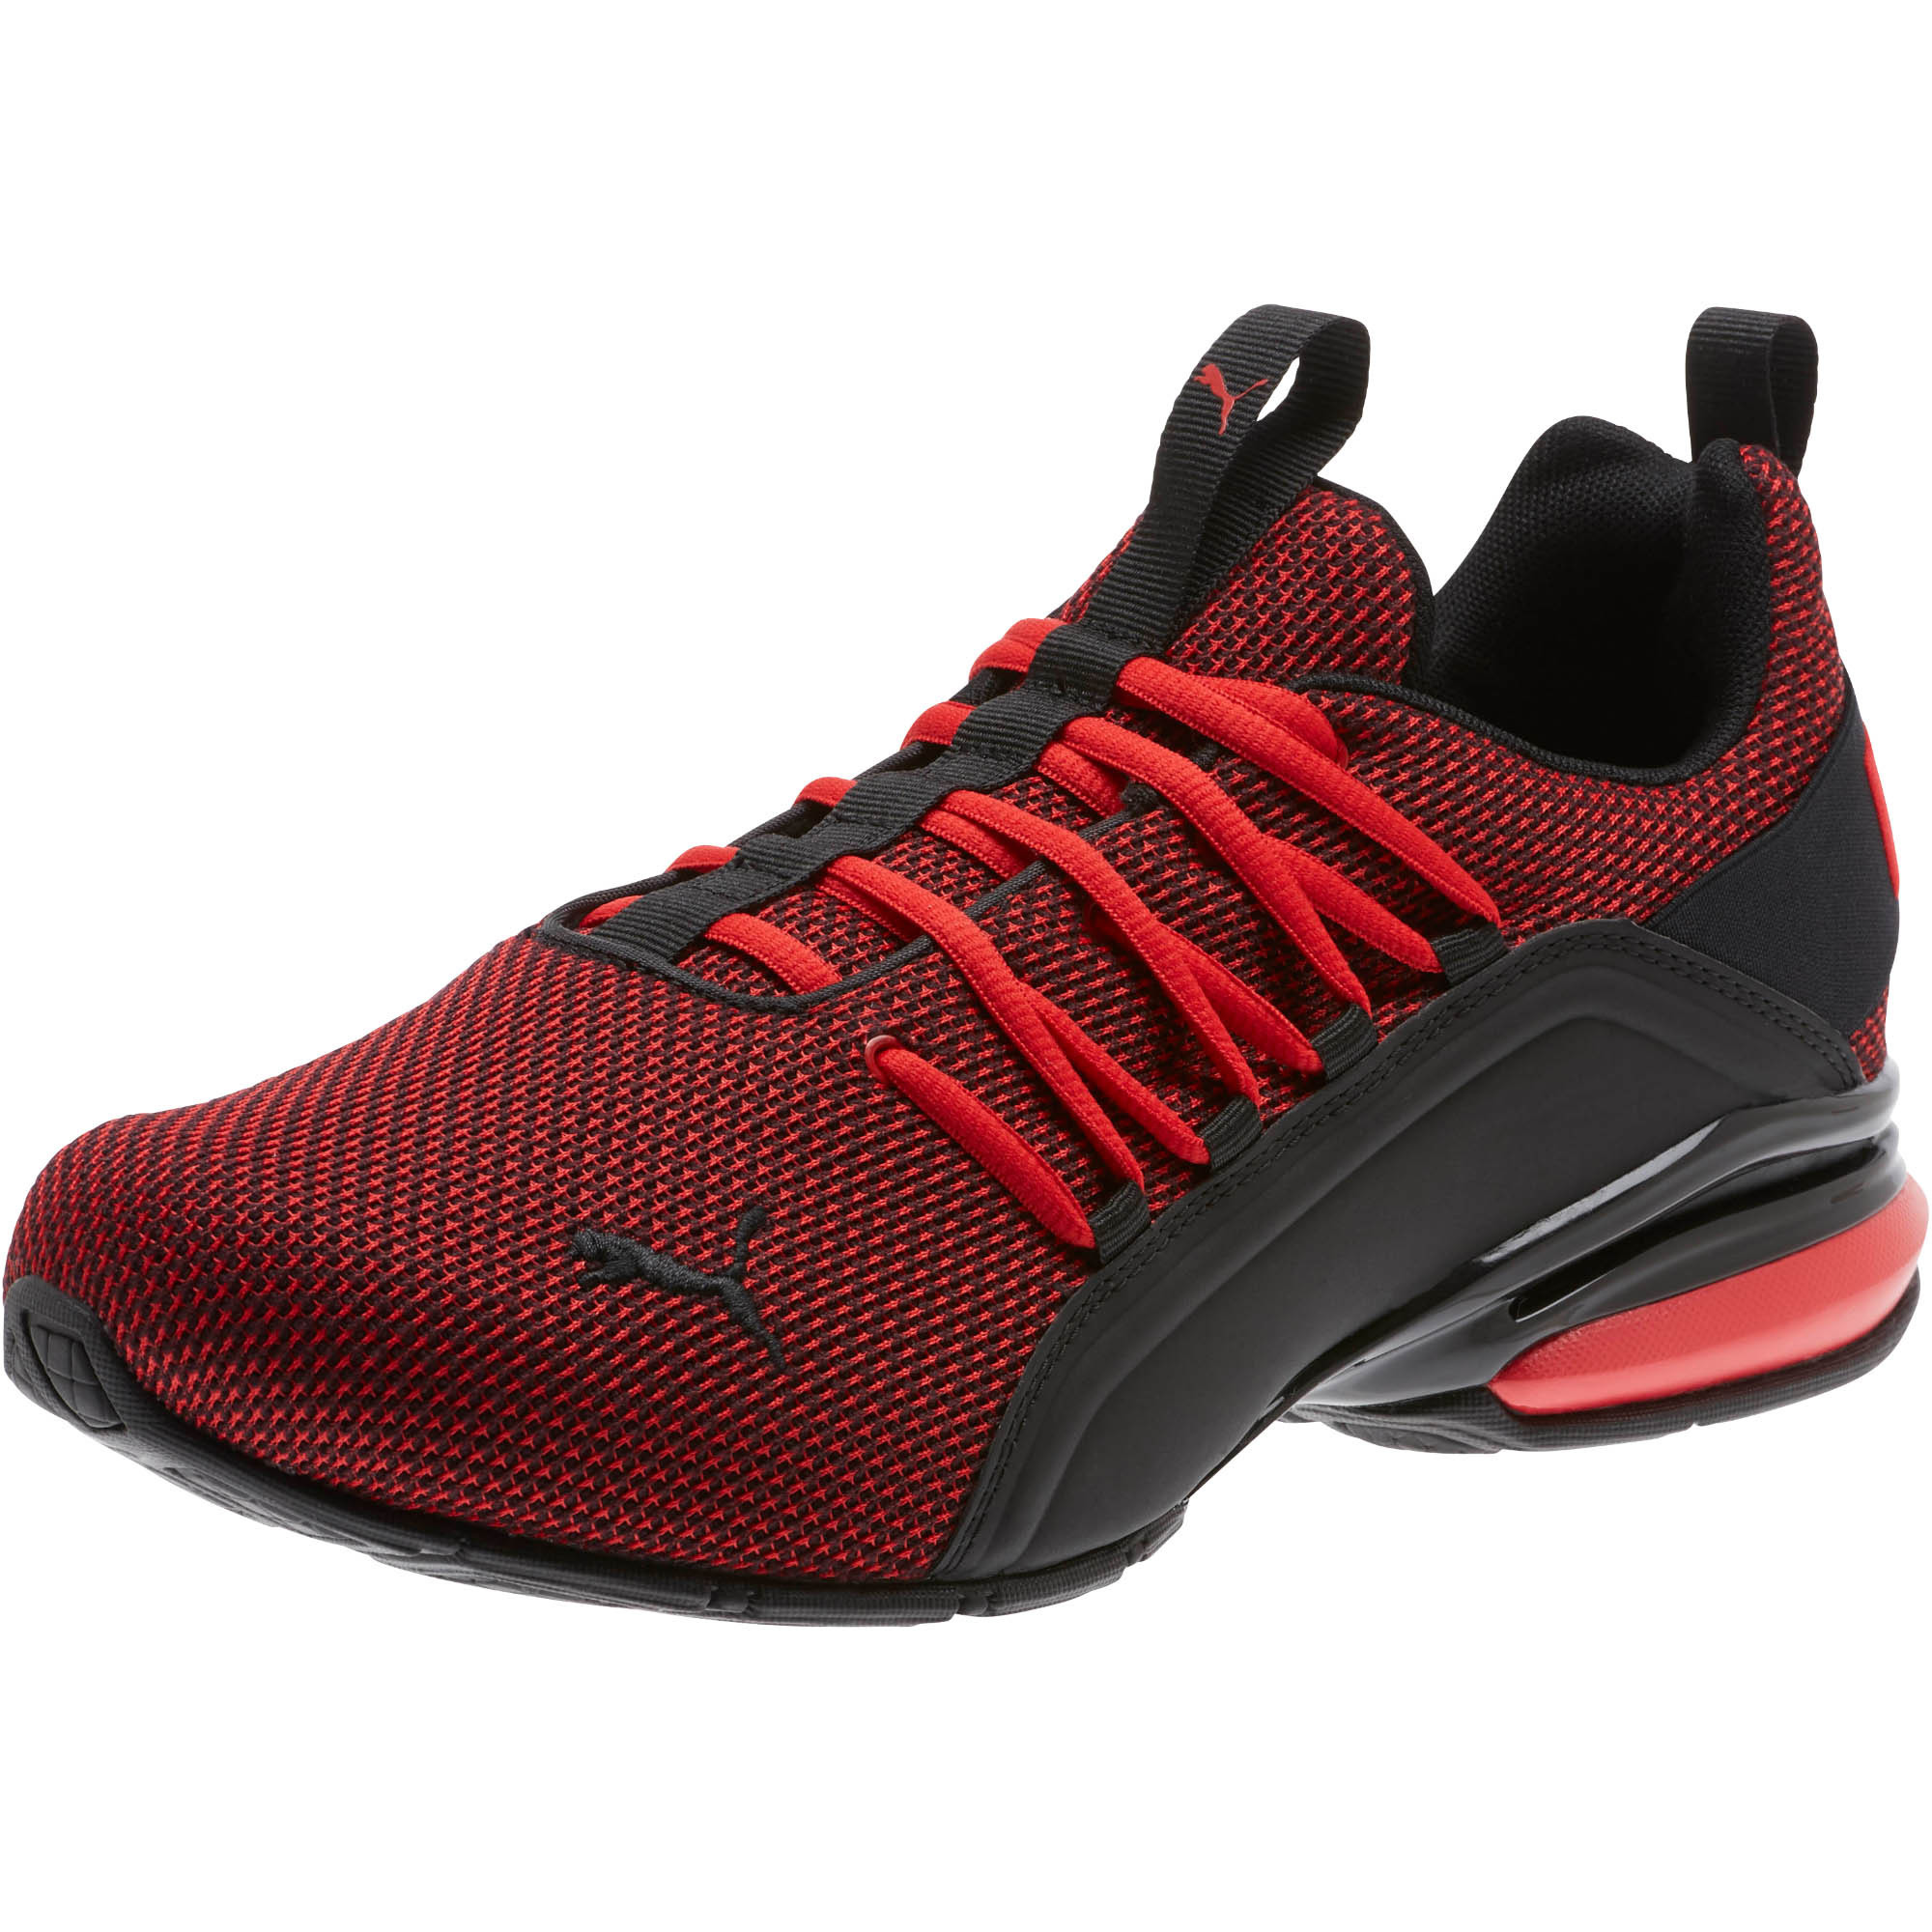 PUMA-Men-039-s-Axelion-Mesh-Wide-Training-Shoes thumbnail 4